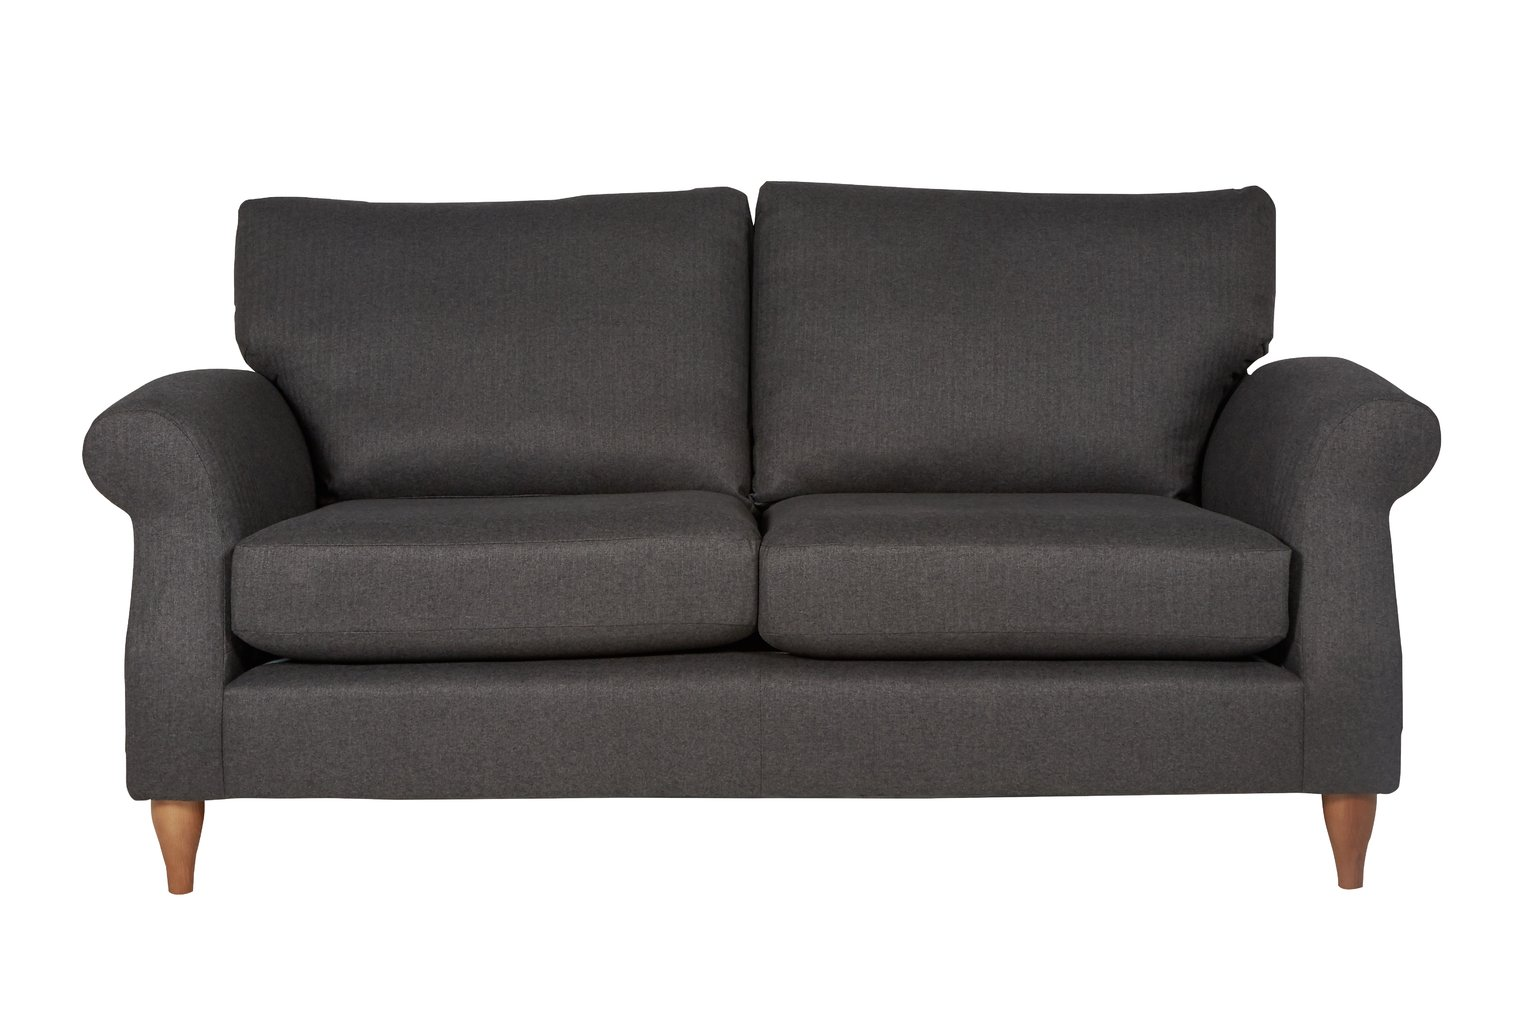 Argos Home Bude 3 Seater Fabric Sofa - Charcoal